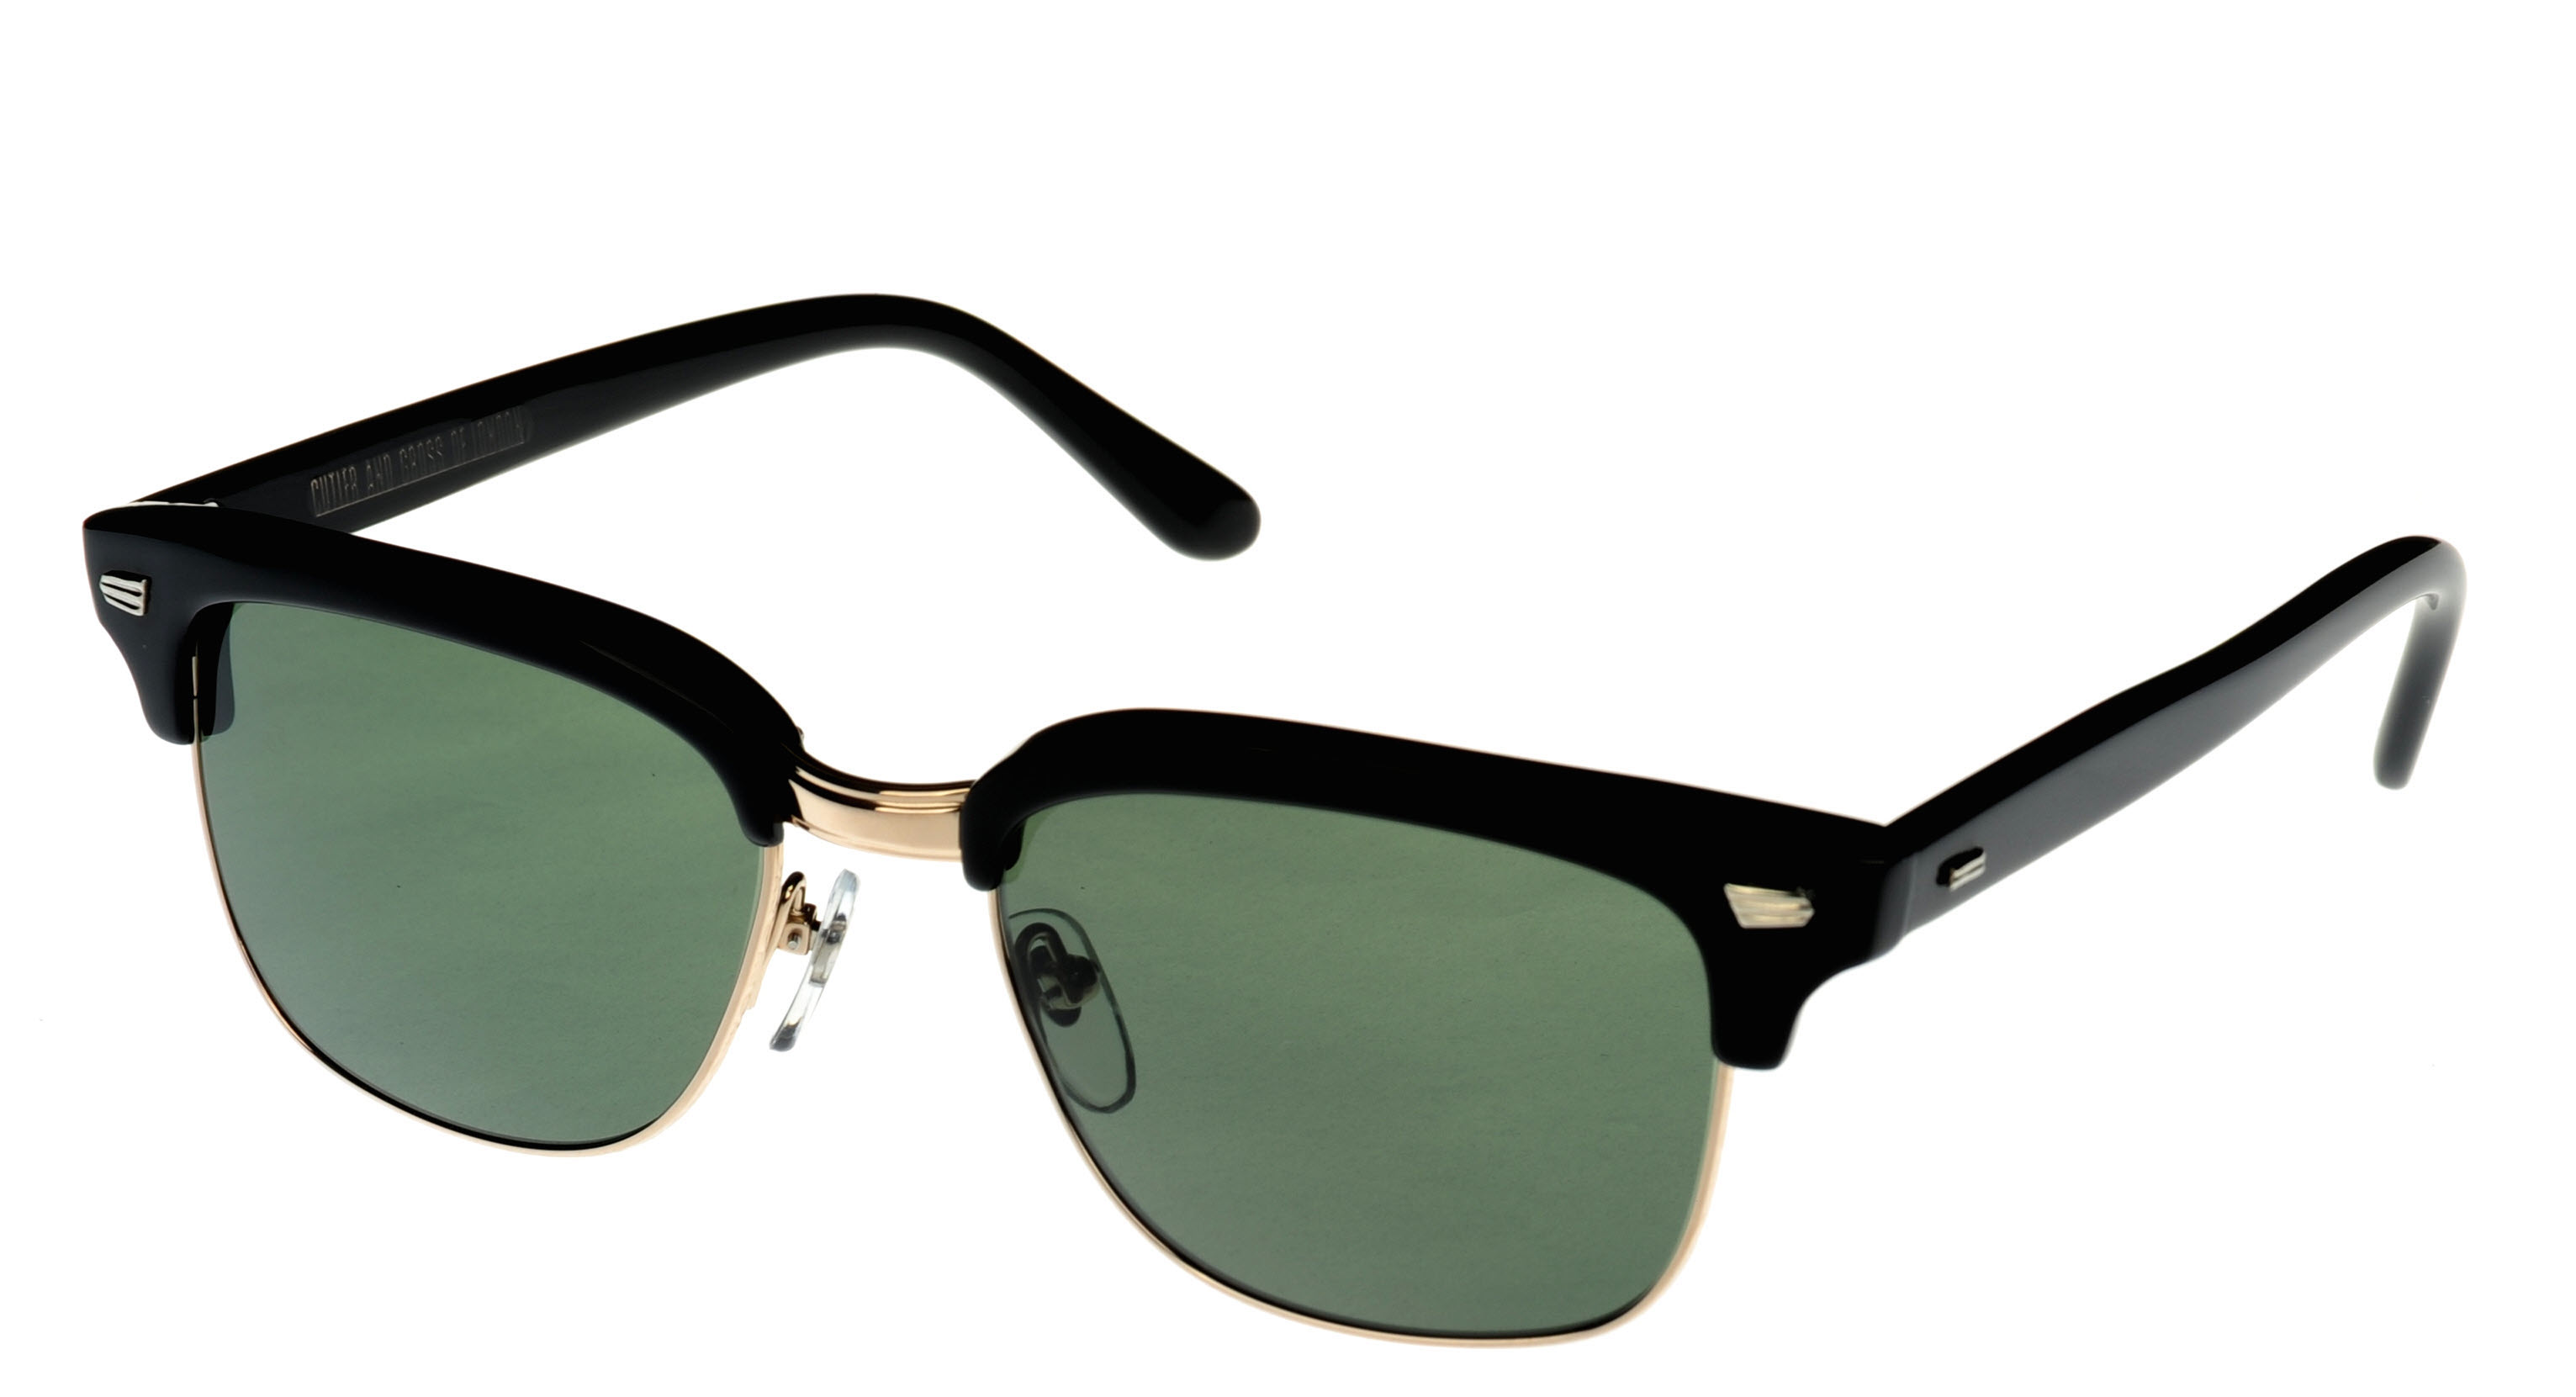 Cutler And Gross Eyewear: SS14 Collection recommend